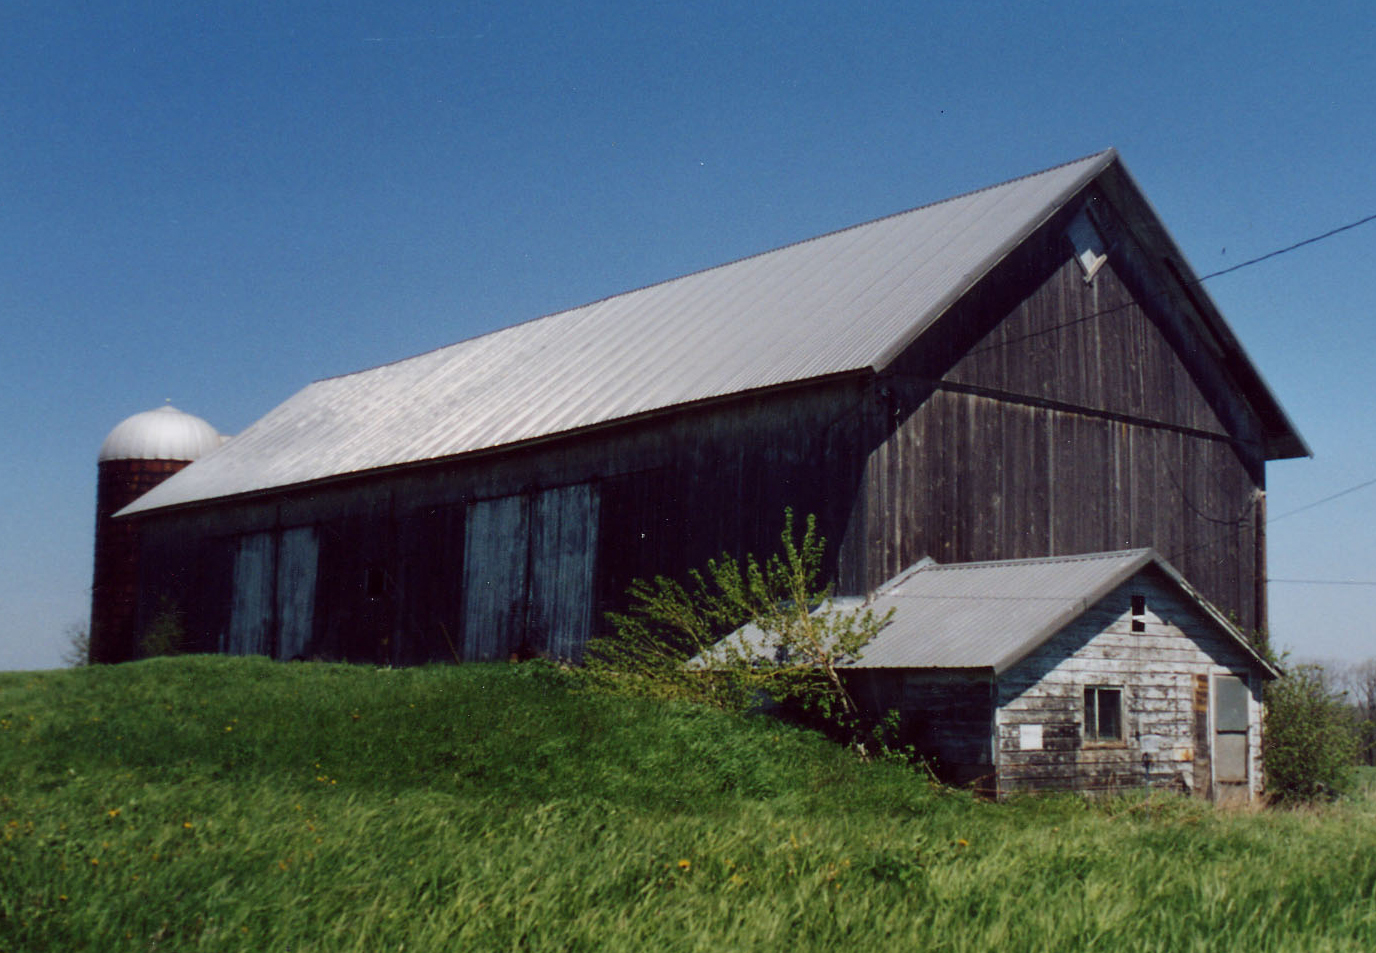 Historic Barns of Ontario County